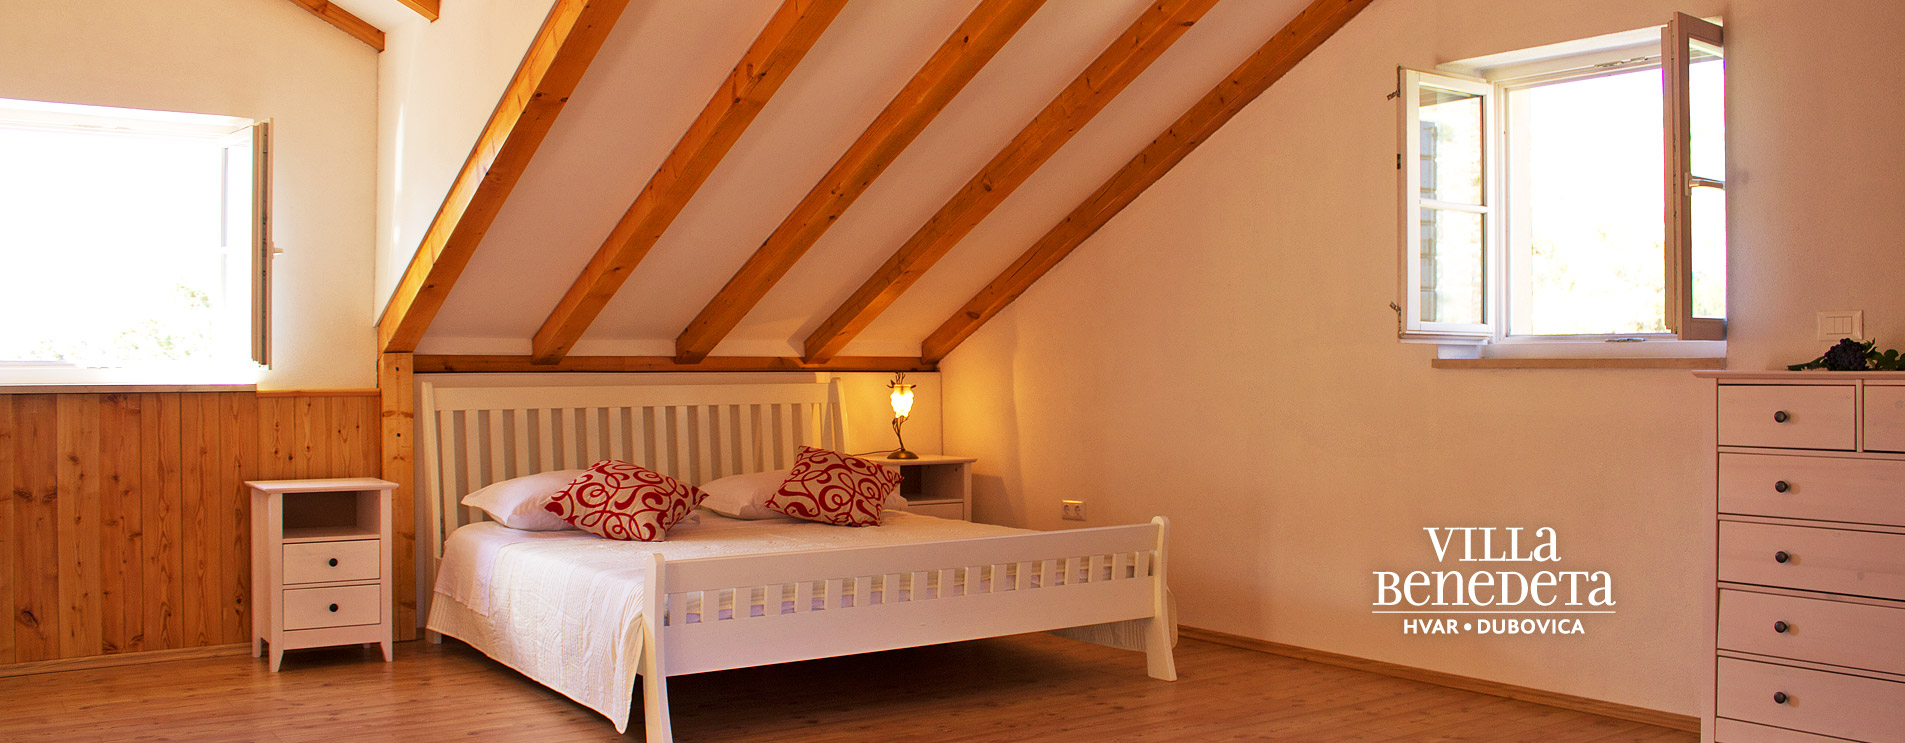 Villa Benedeta, spacious room with a double bed in the attic.